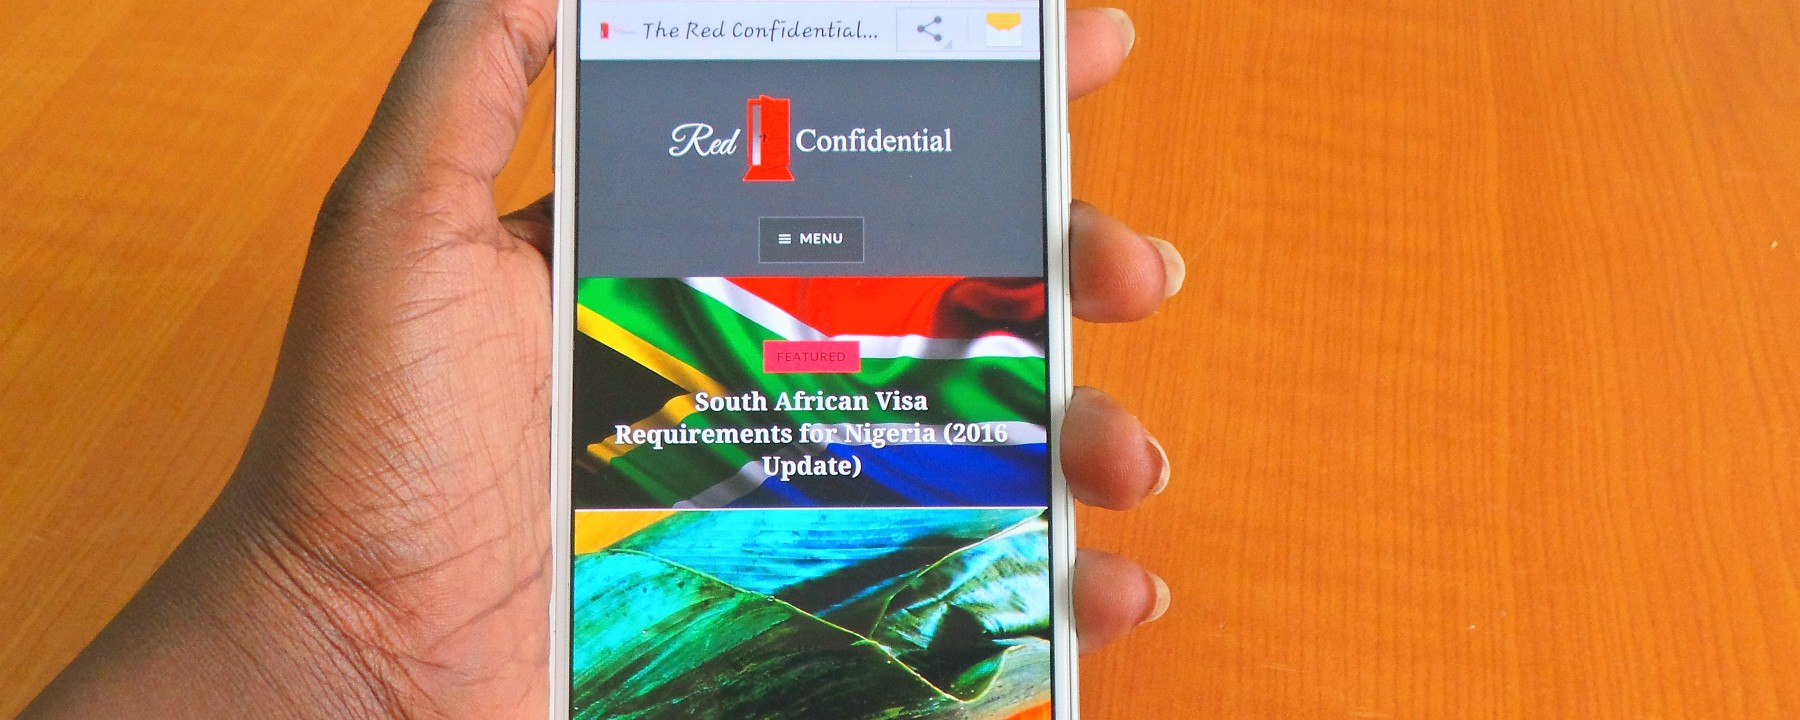 Red Confidential on Android